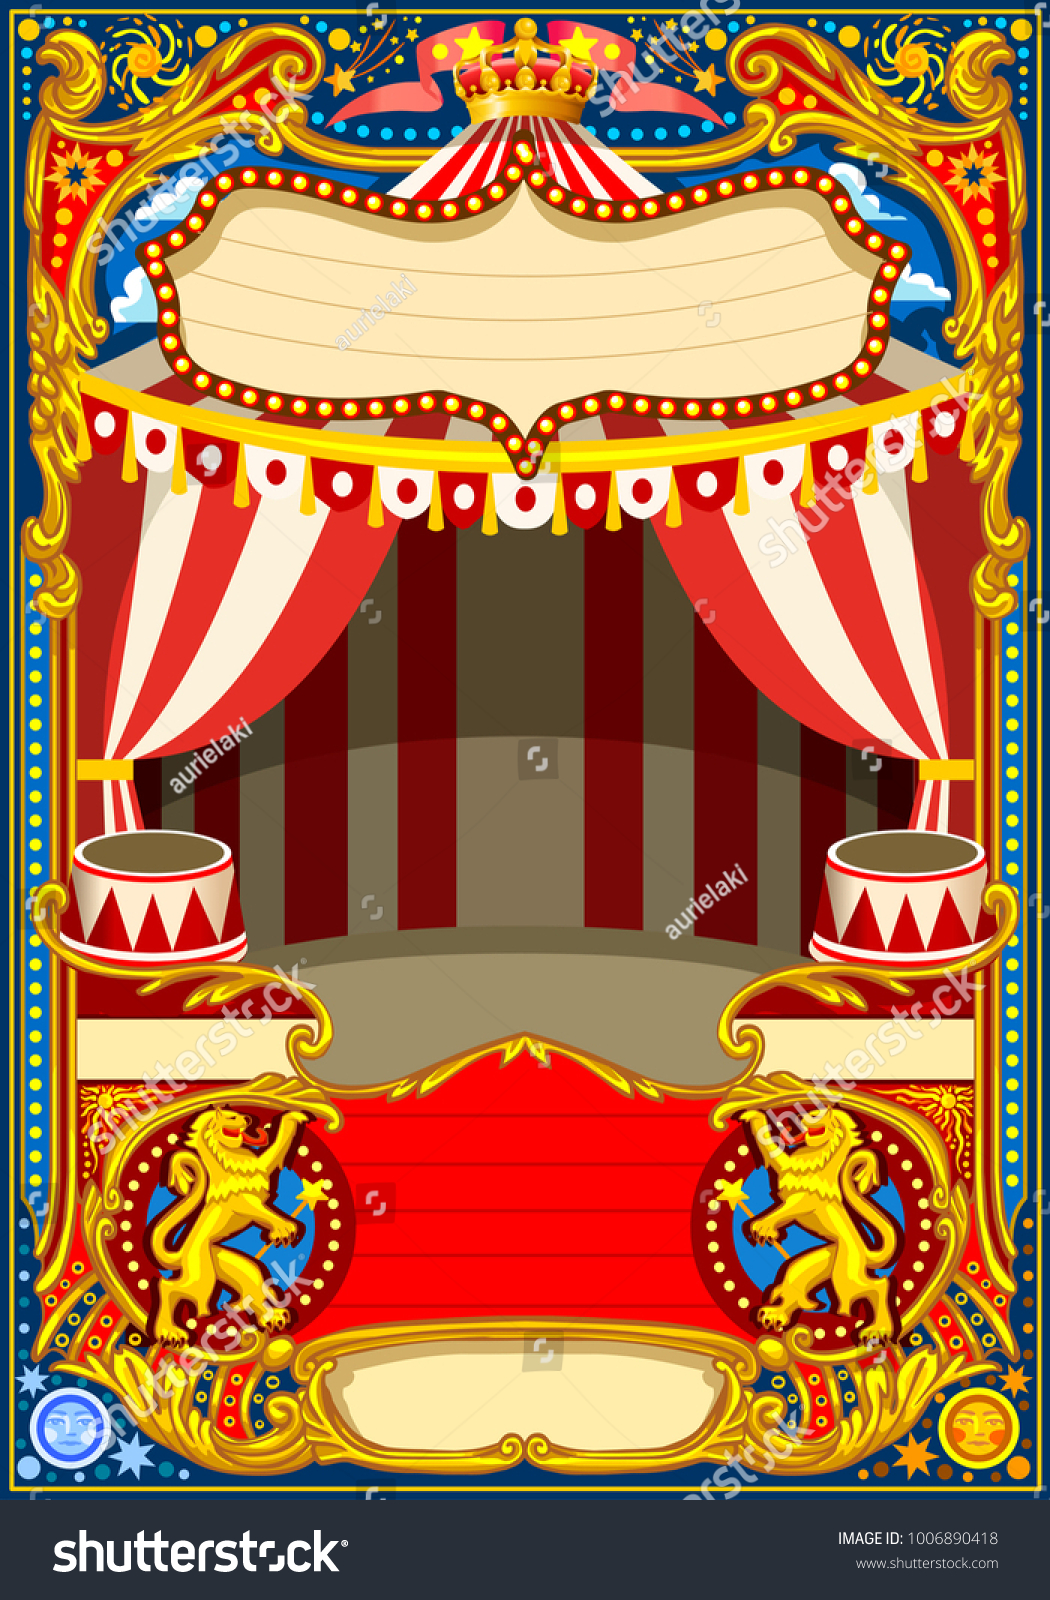 Carnival poster template. Circus vintage theme for kids birthday ...